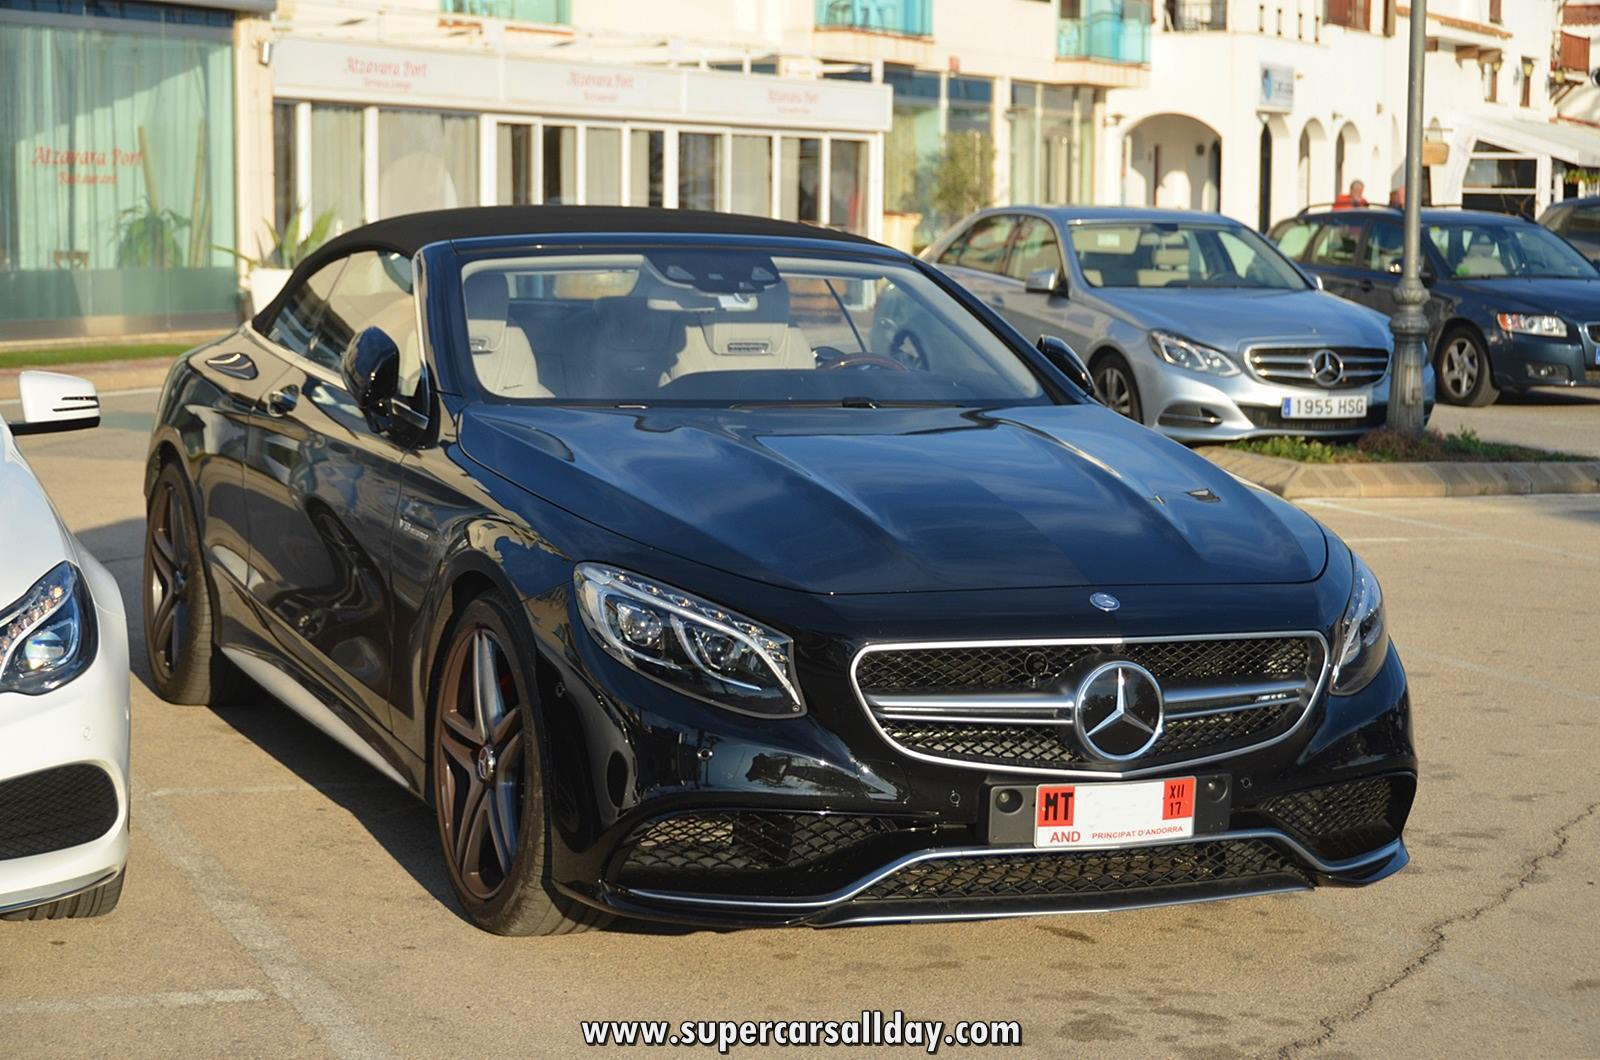 Tiny Home Designs: Mercedes-AMG S63 Convertible